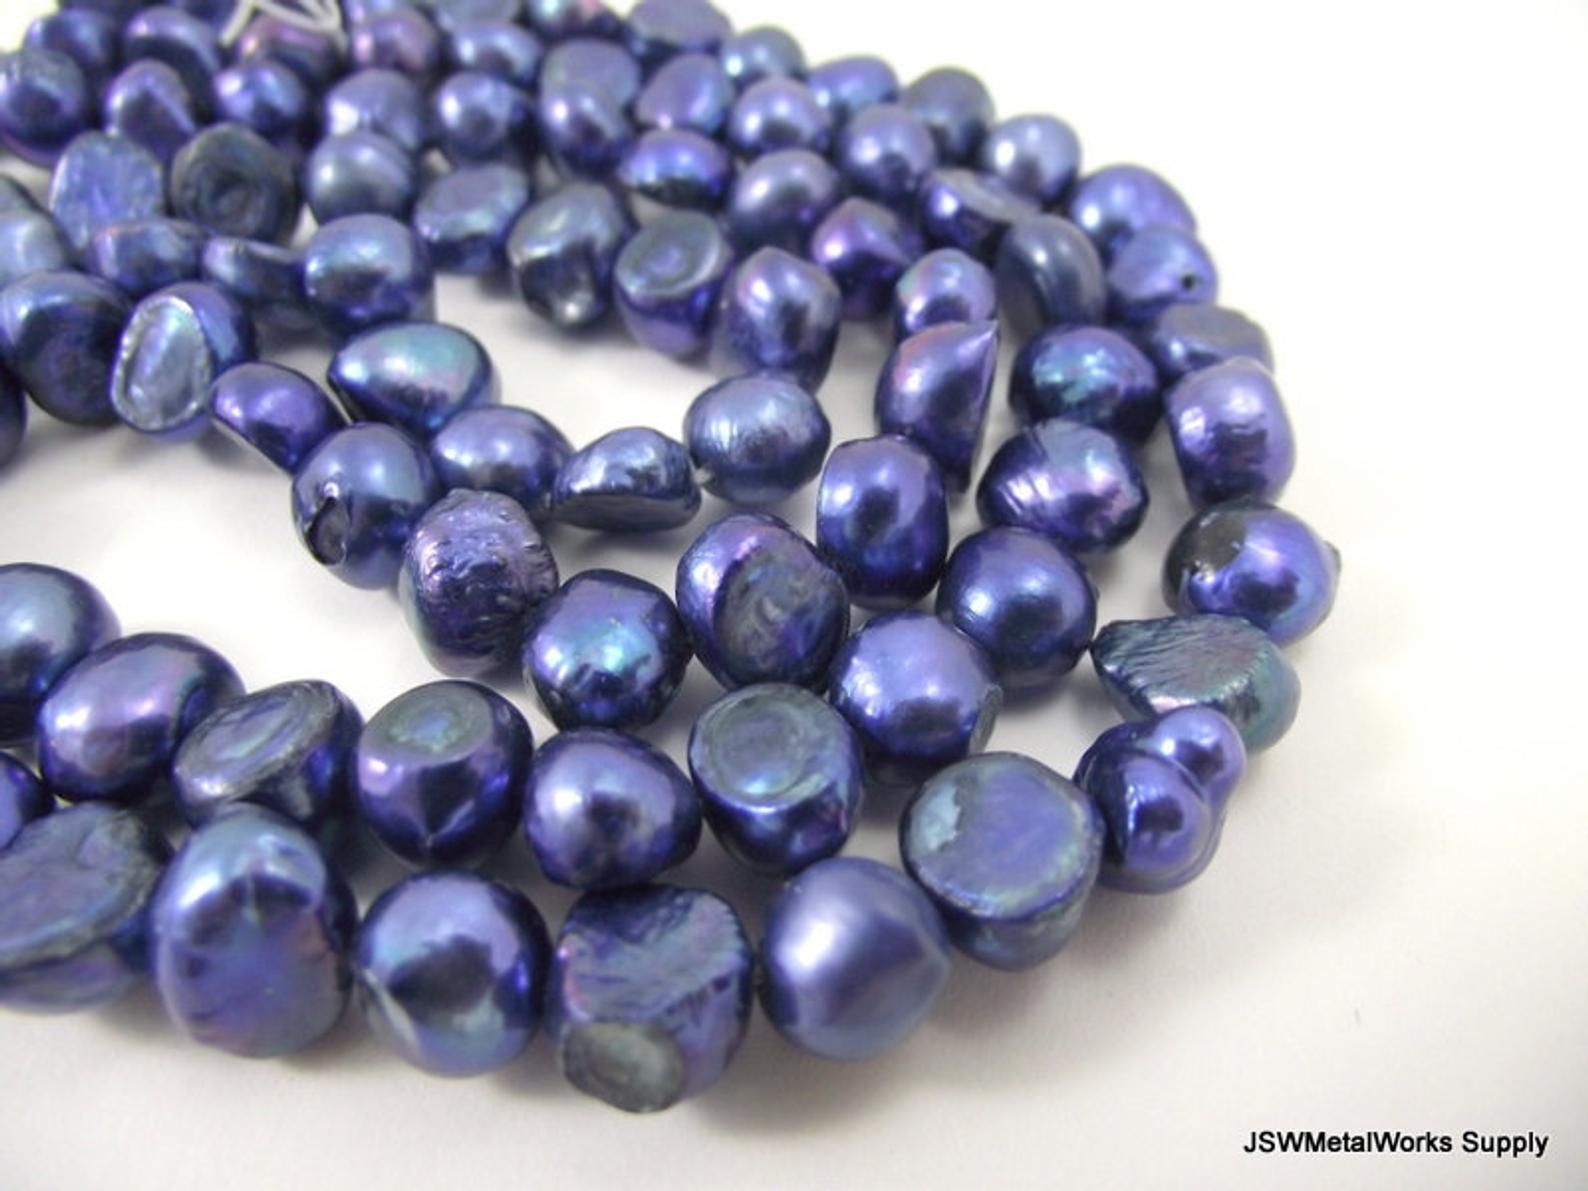 8 Mm Cobalt Cultured Freshwater Potato Pearl Blue Flat Sided Etsy Pearls Blue Flats Freshwater Cultured Pearls